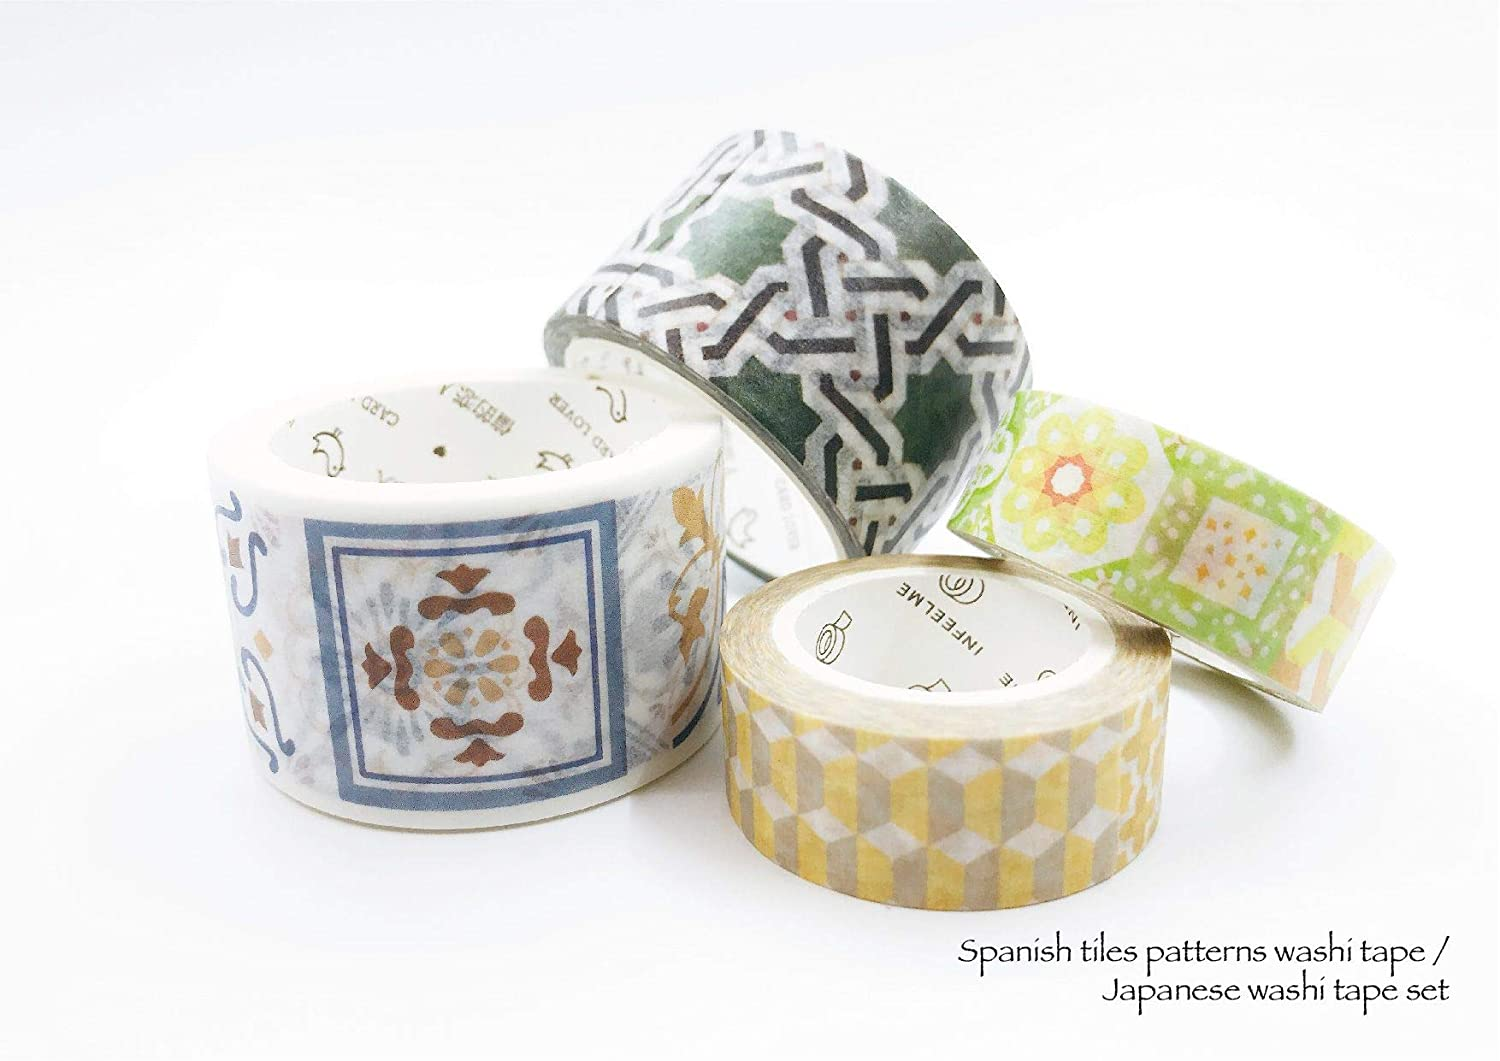 Spanish Tiles Print washi Tape Set of 4 Rolls. for scrapbooks, DIY Crafts, Gift Wrapping, Wall Paper Borders, Custom Decorating. Leaves no Residue When Removed!